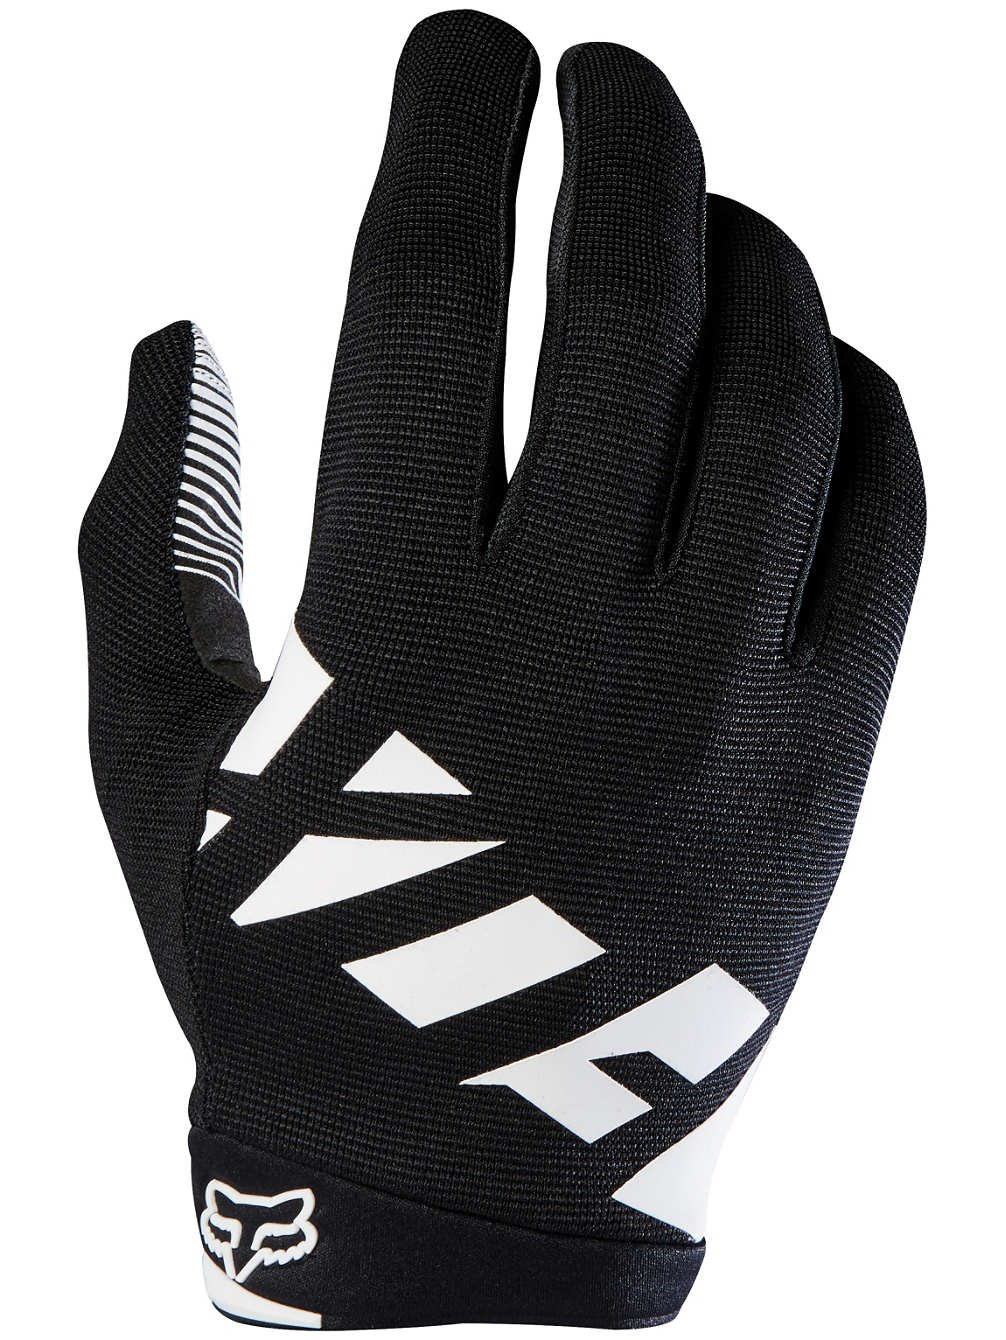 Fox Racing Ranger Bike Gloves Large Black Grey White Fox Head 18747-424